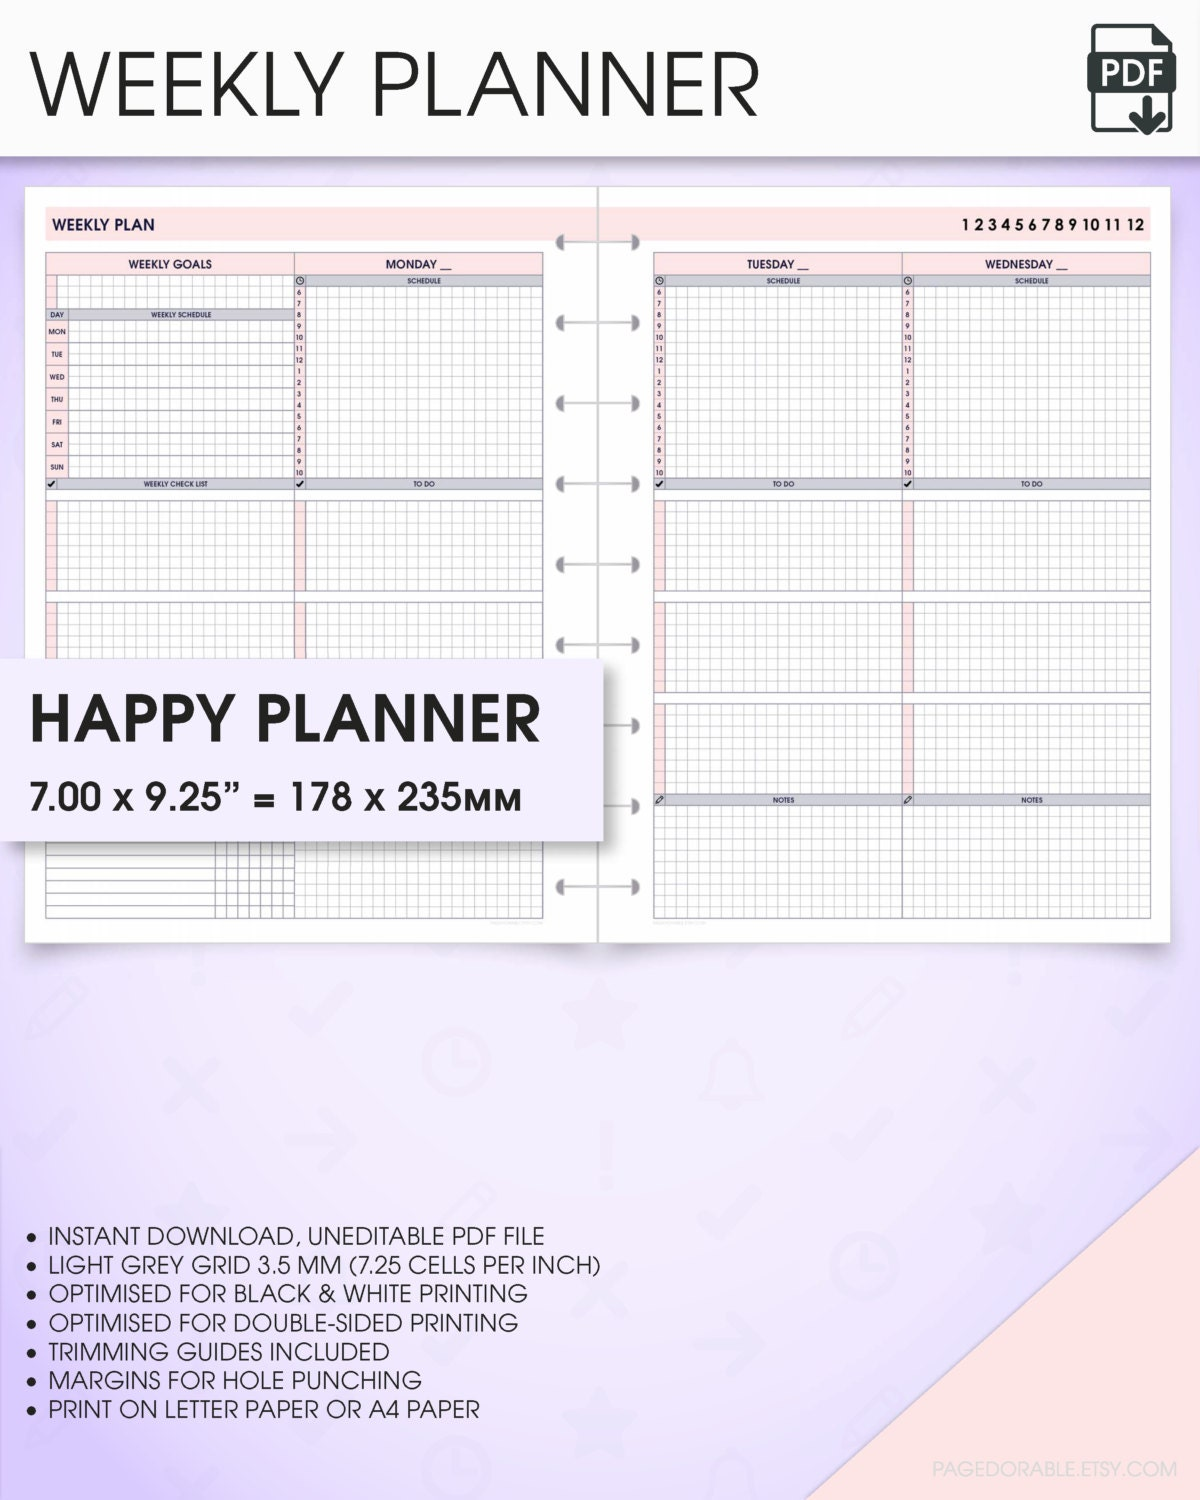 Happy Planner Calendar : Weekly happy planner printable inserts undated wo p v